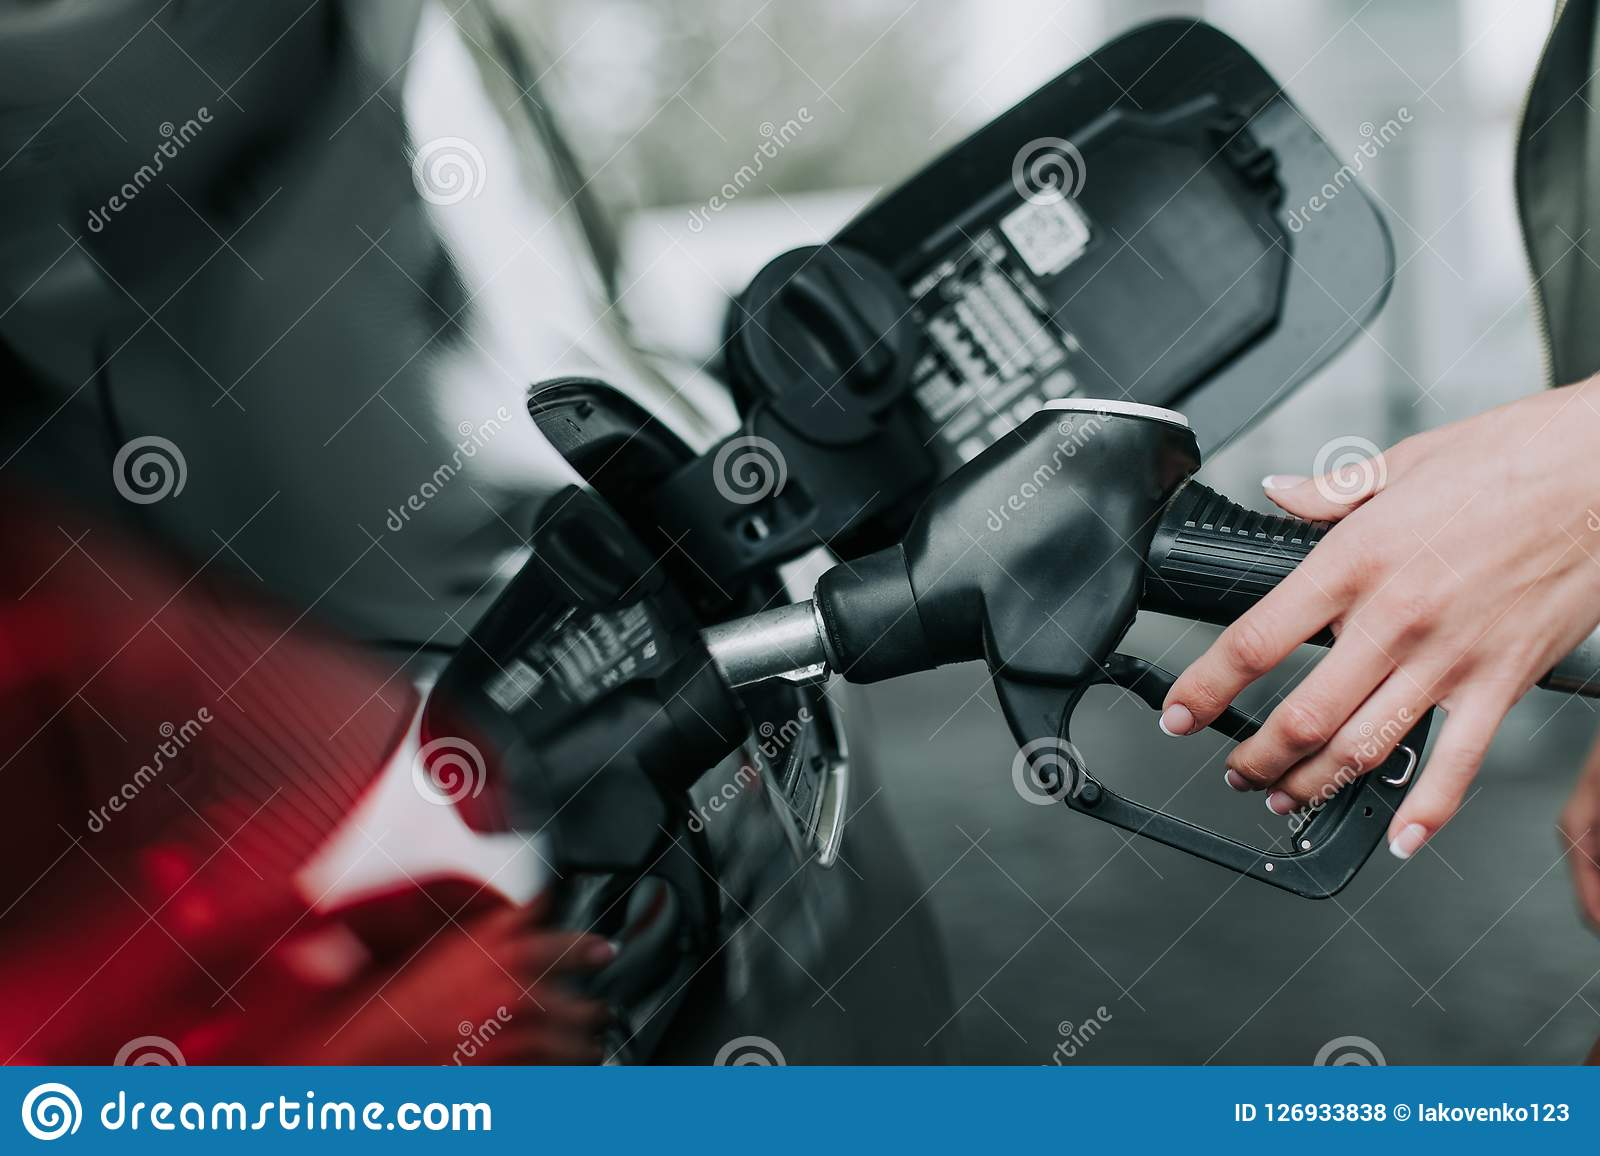 Woman hand holding petrol pump nozzle outdoor